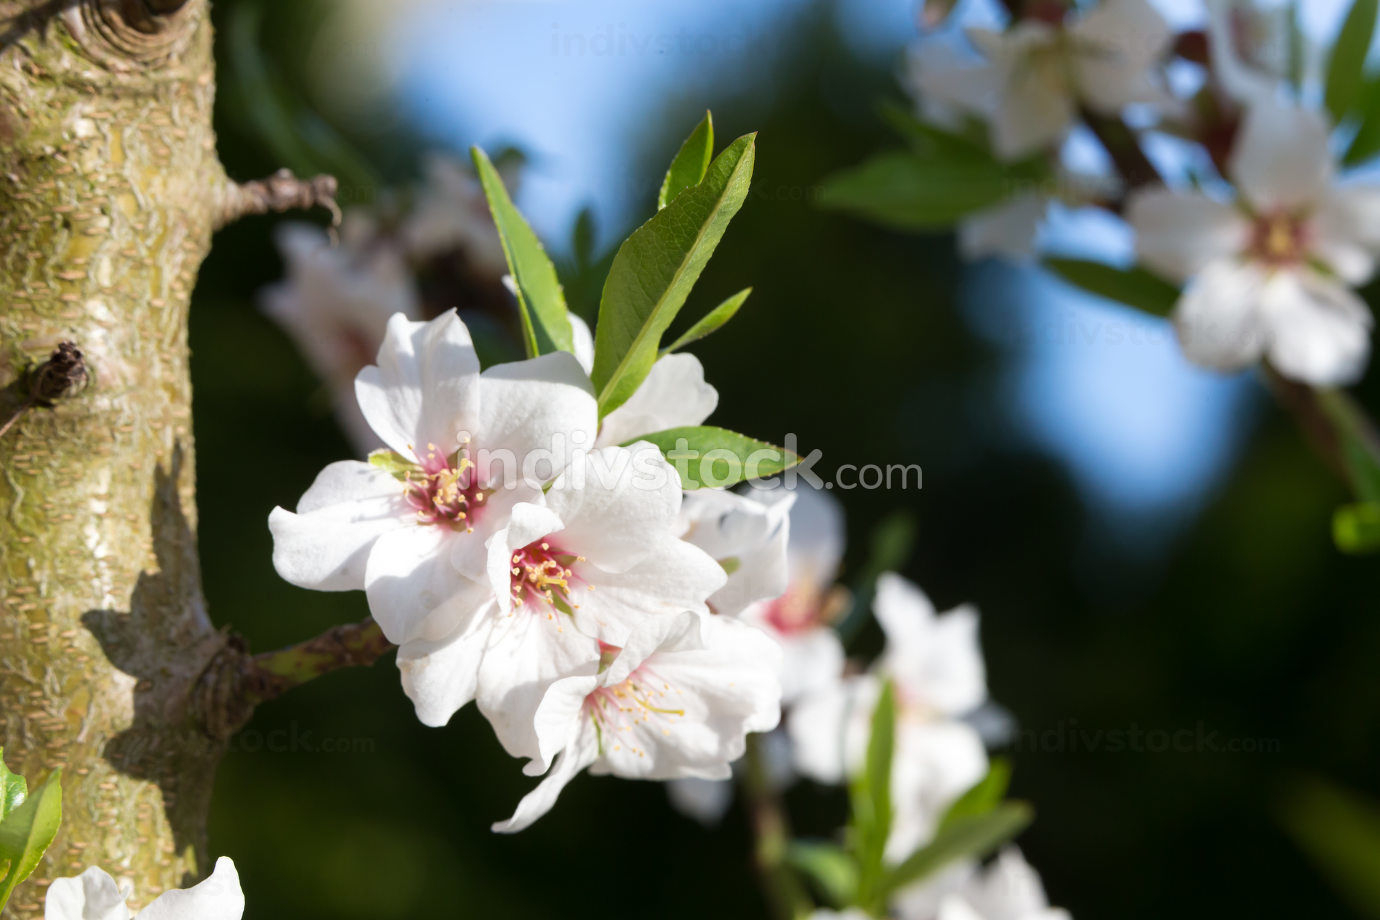 Flowers of a cherry tree in spring